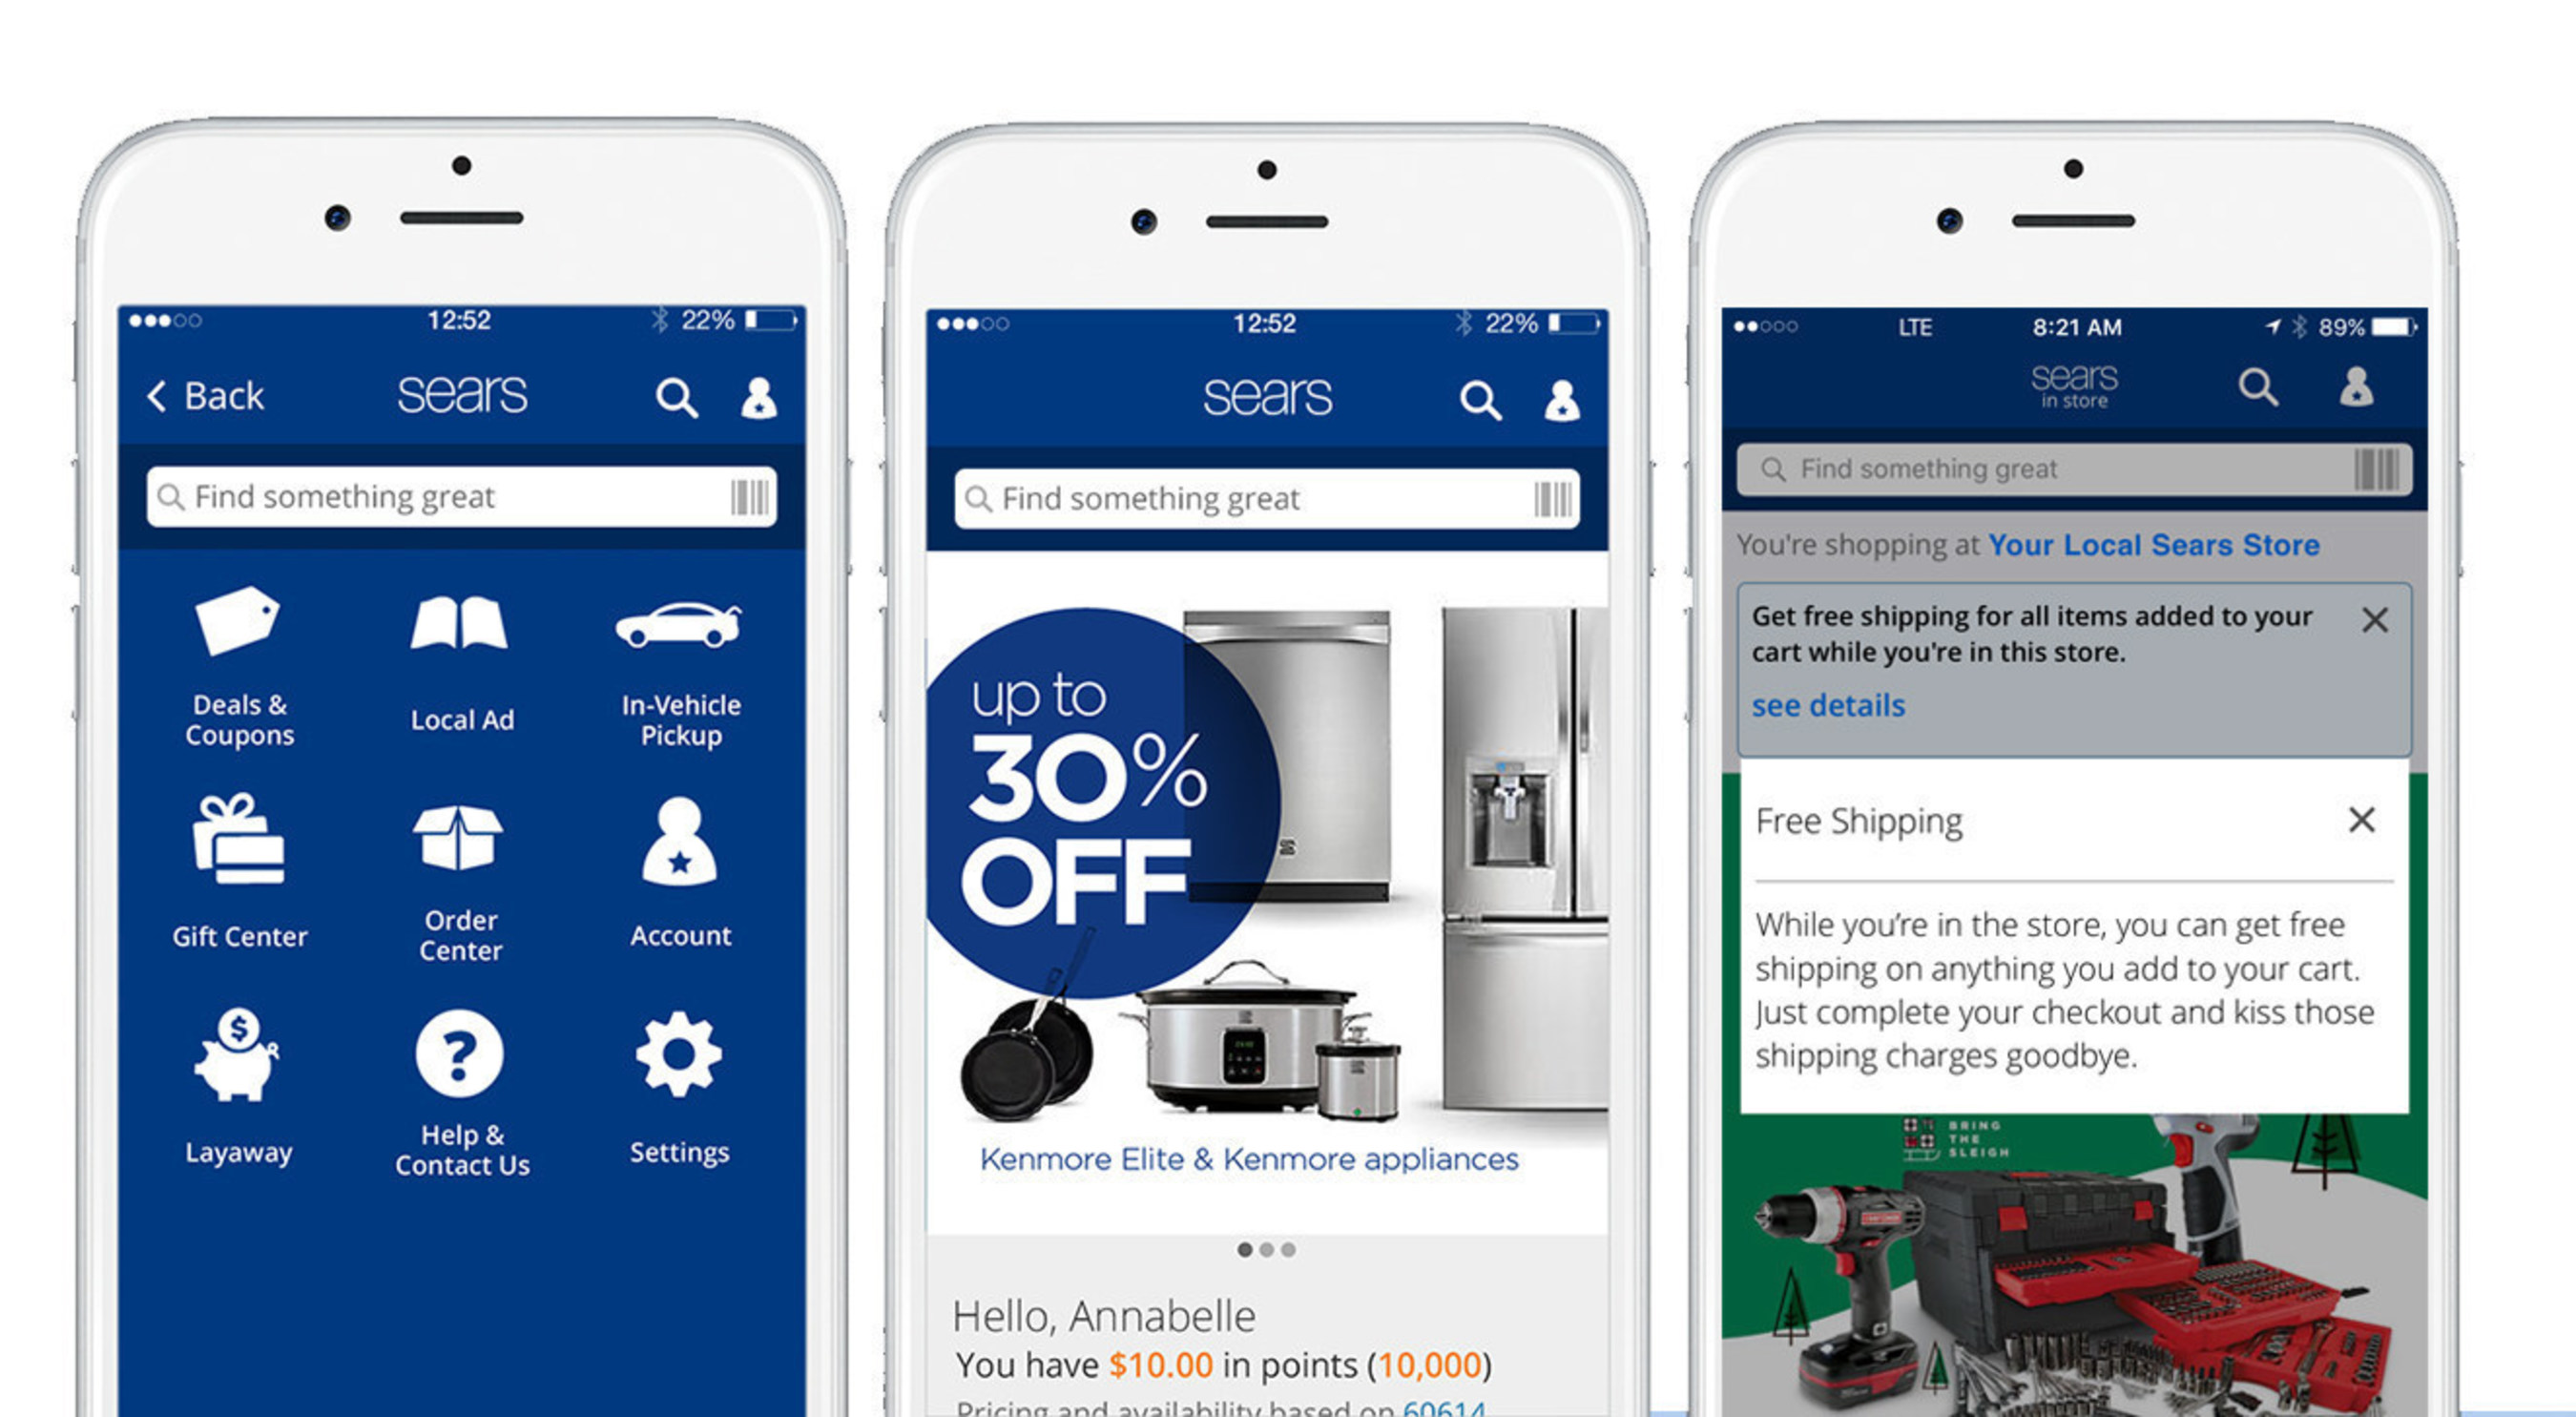 Sears Upgrades Mobile App, Introduces Free In-Store Shipping From Mobile Device